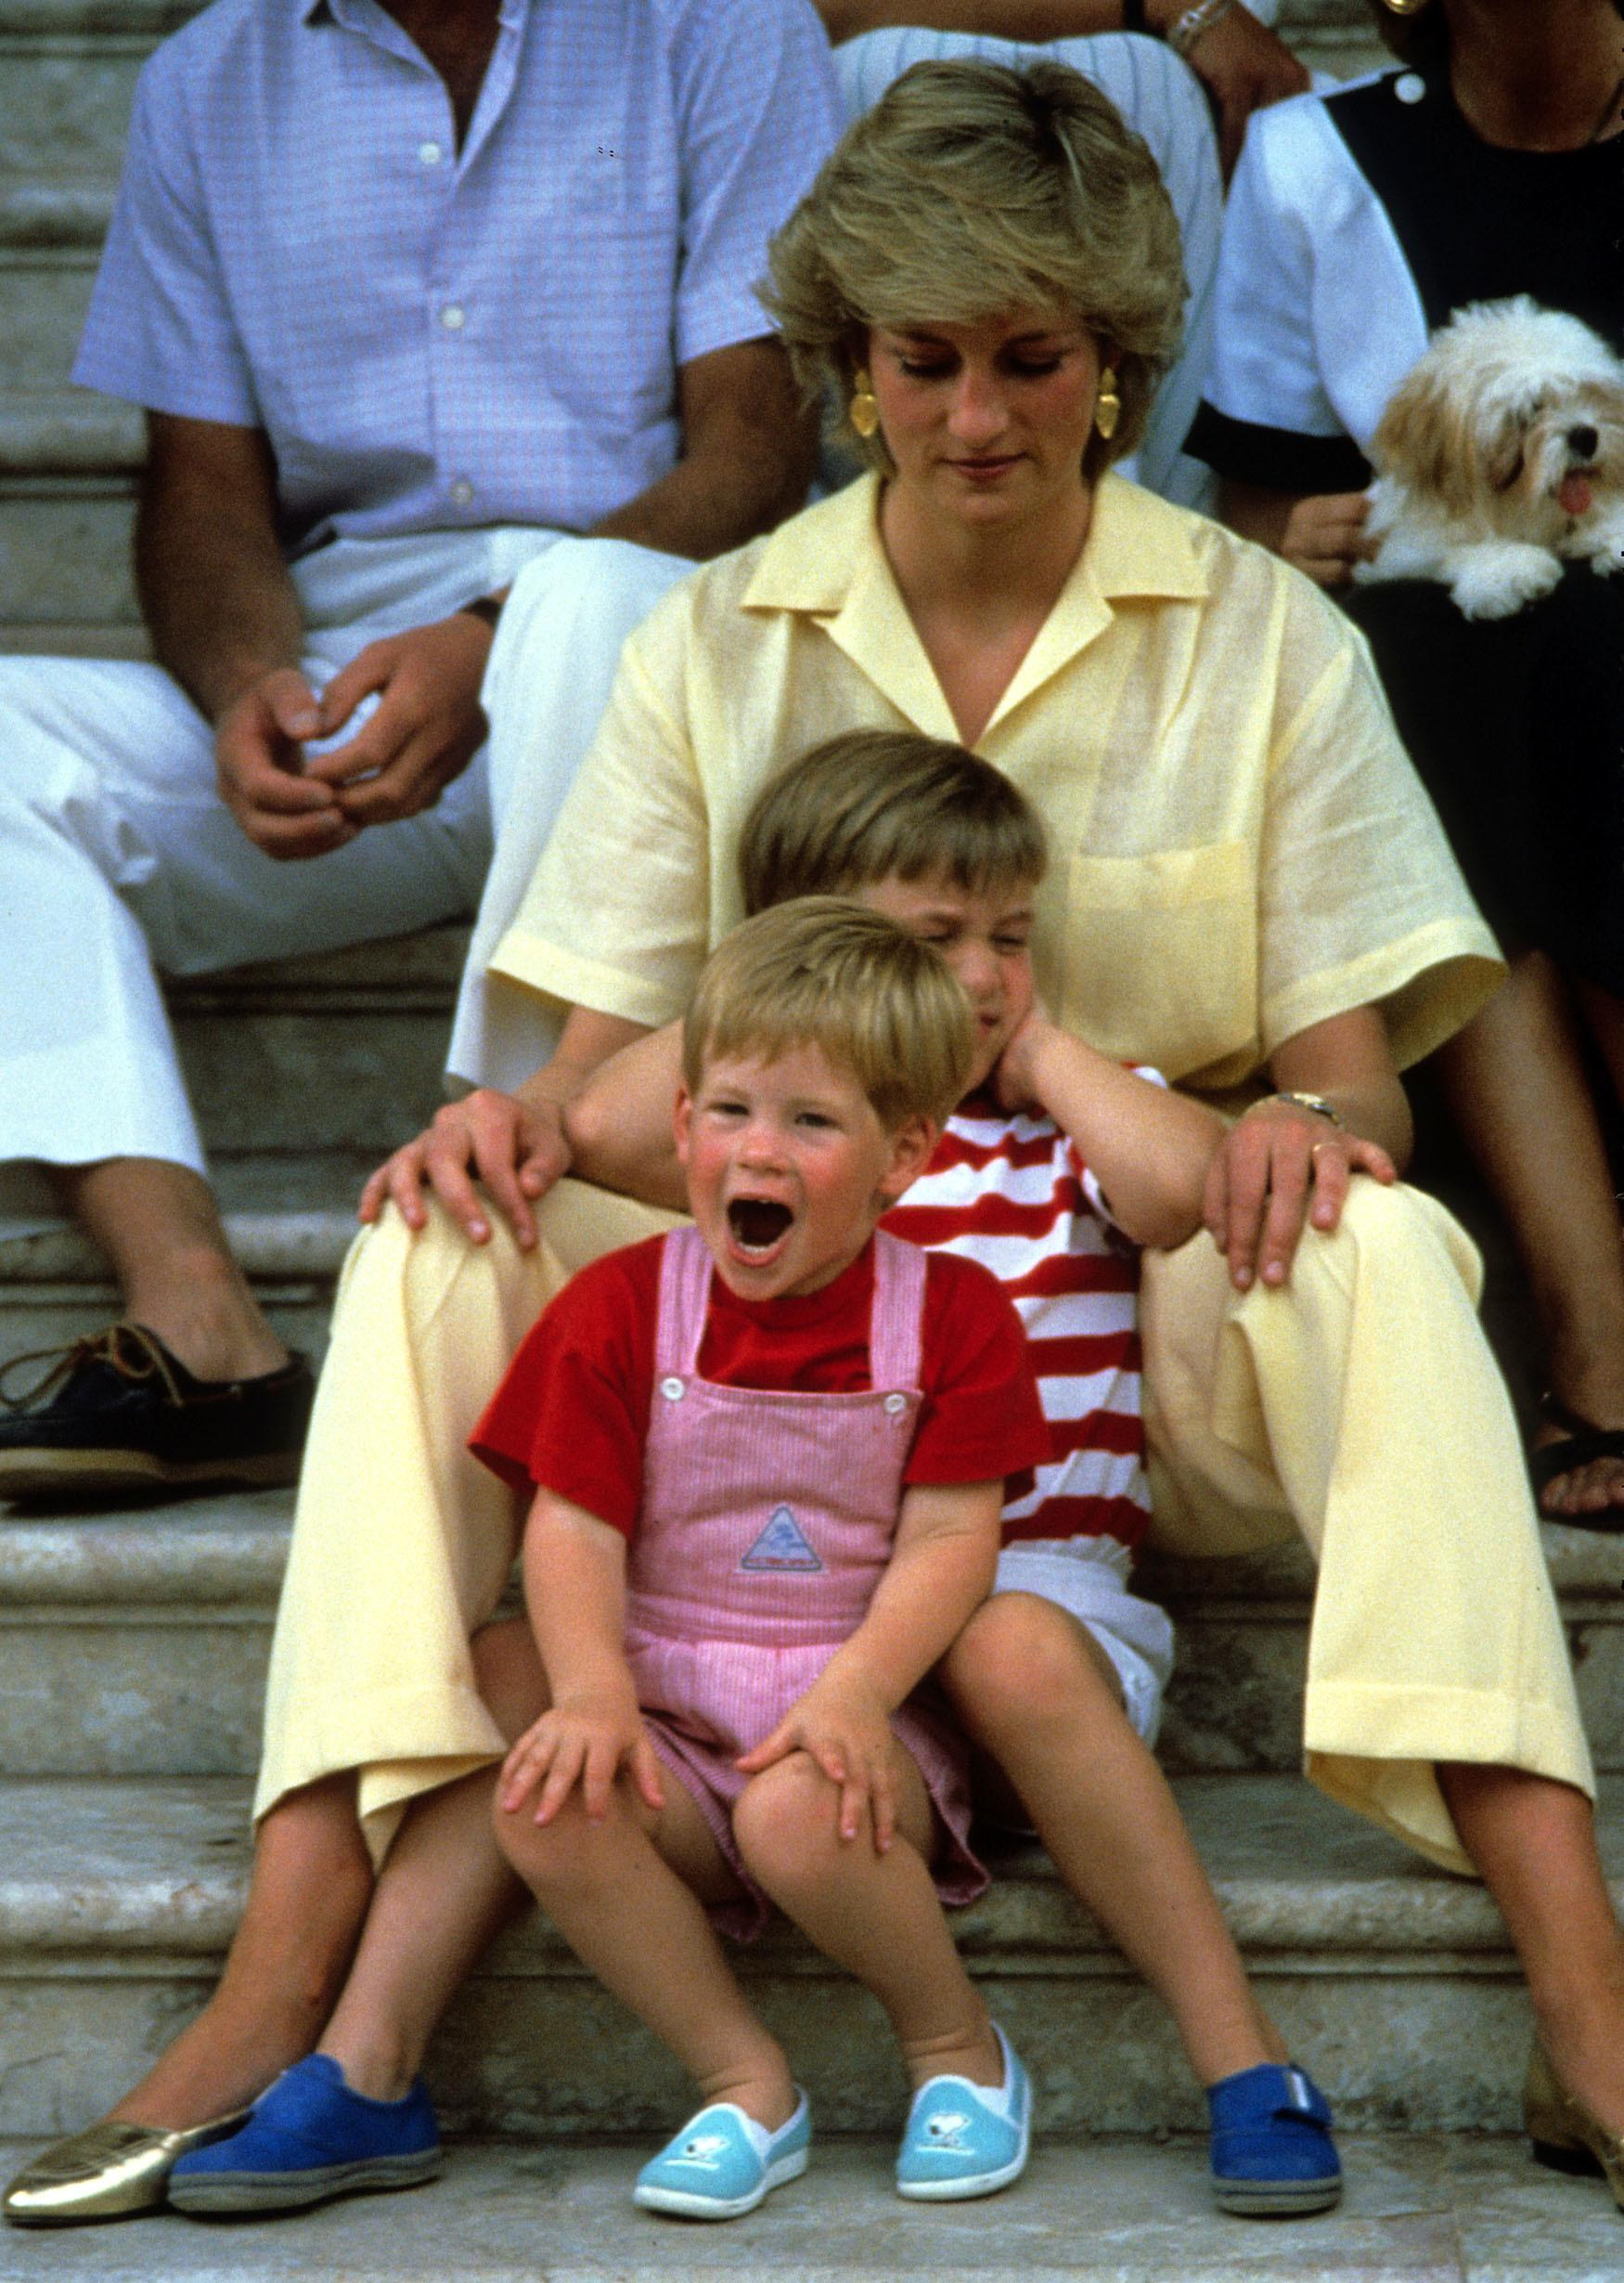 Princess Diana, Princess of Wales with Prince William and Prince Harry on holiday in Majorca, Spain on August 10, 1987. Also present were the Spanish Royal Family and the Prince of Wales. (Photo by Anwar Hussein) *** Local Caption *** XXX; XXX